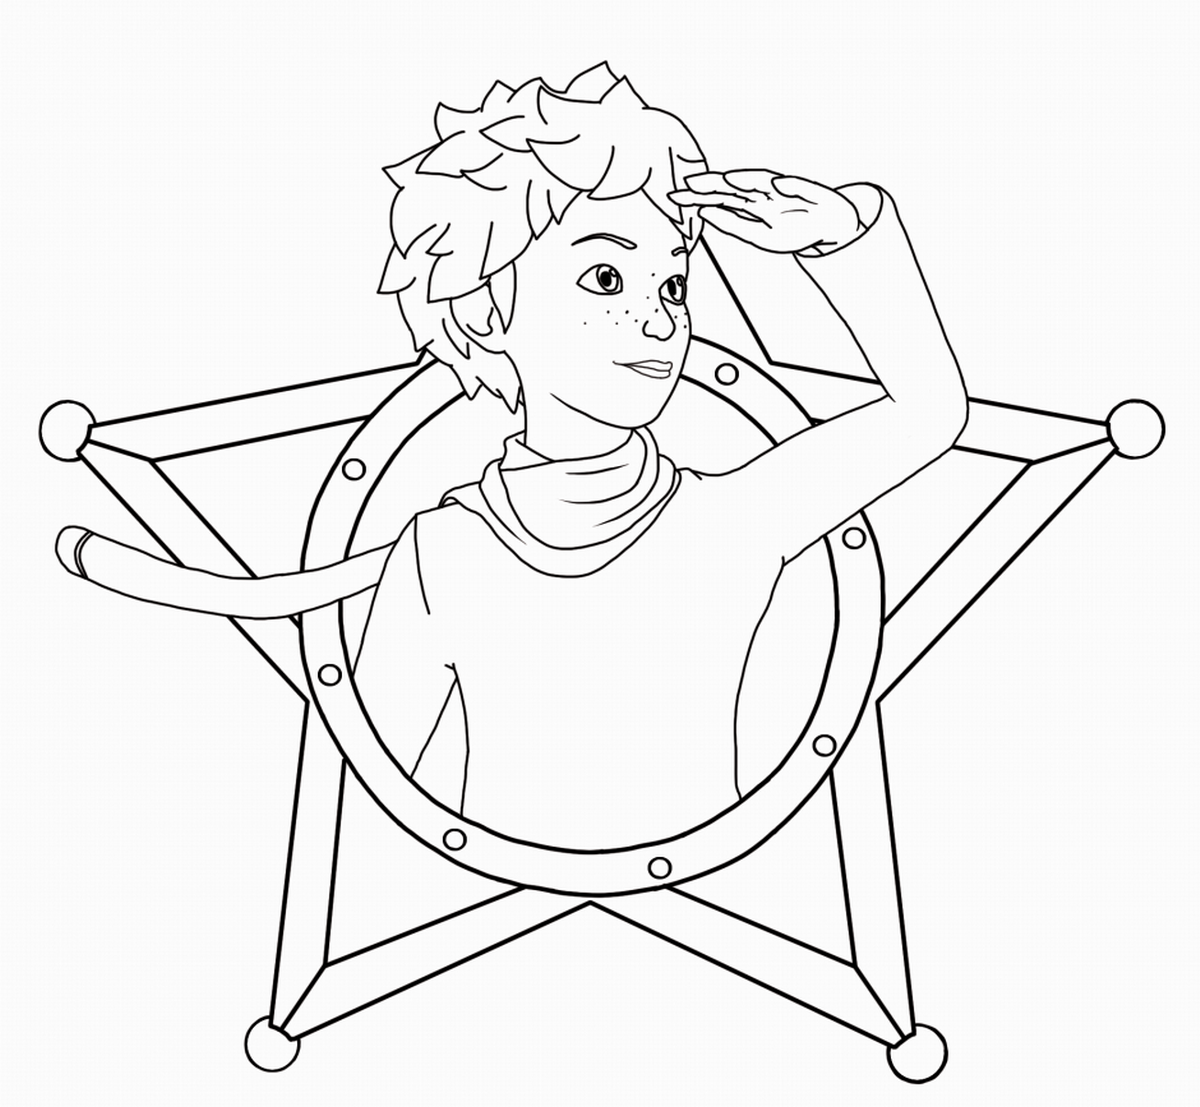 the little prince coloring pages coloring page the little prince by saint exupery 3 little pages prince coloring the